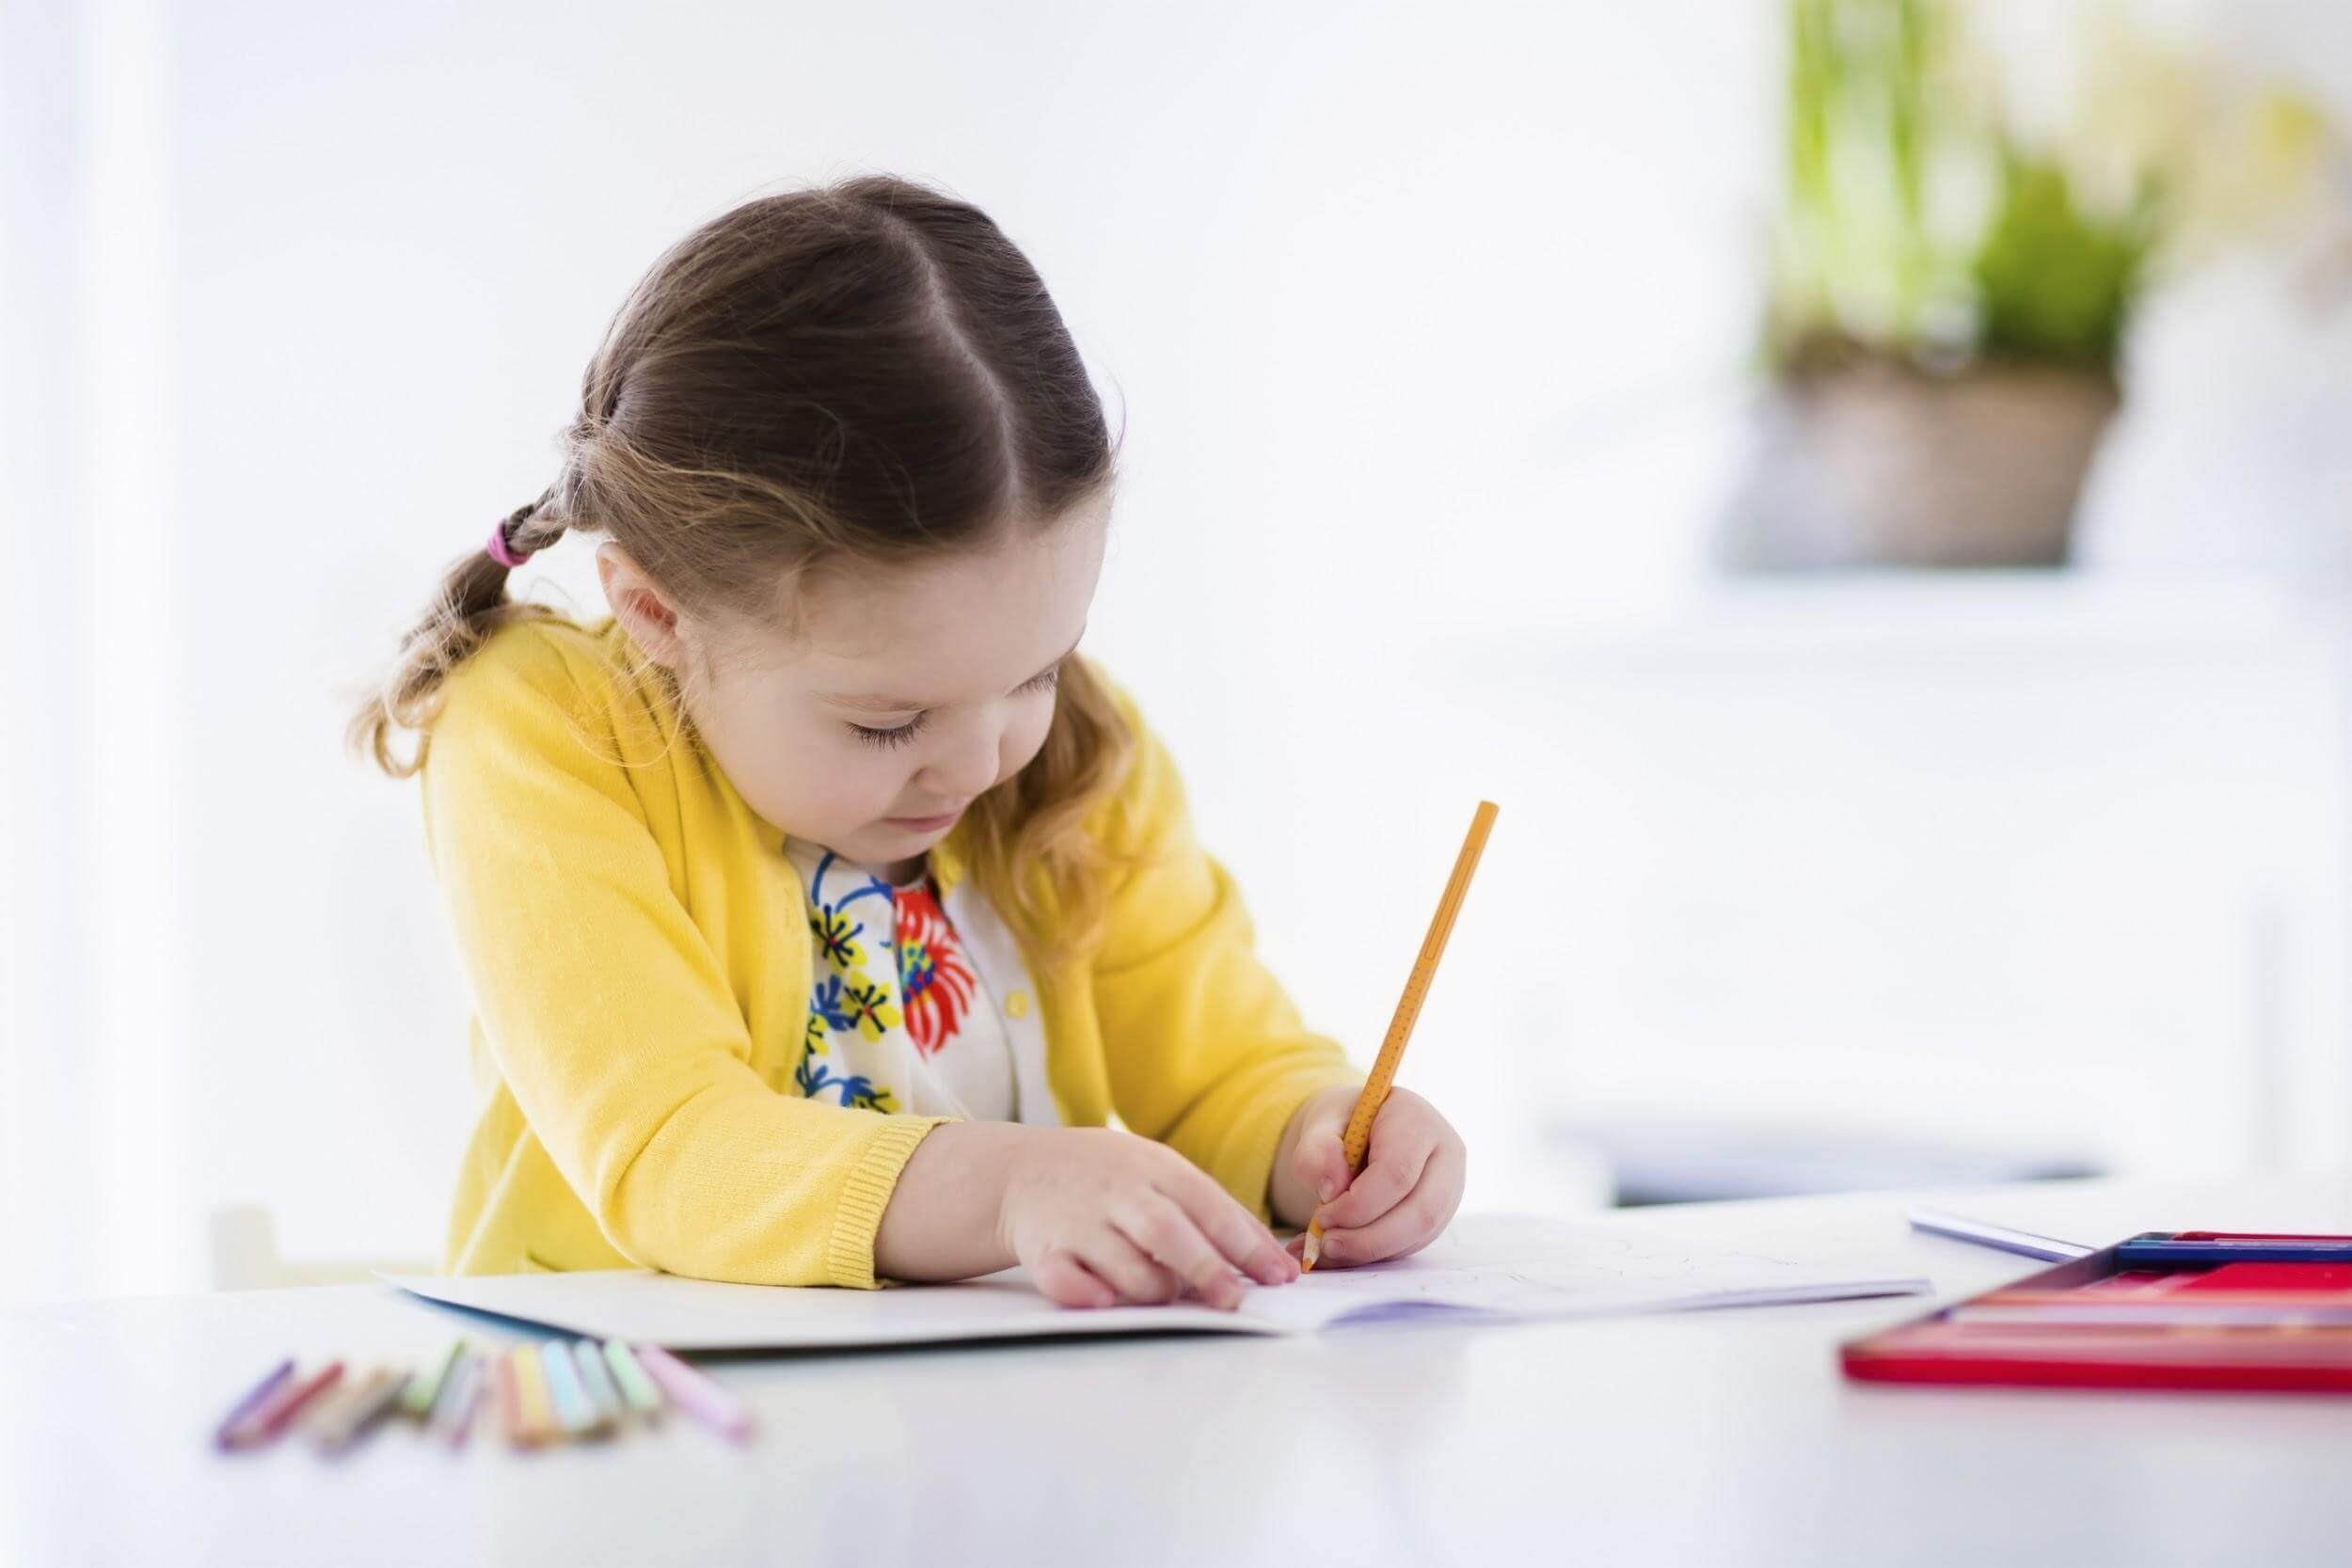 essay children learning use computers very early age The controversial early years foundation stage, which sets dozens of learning goals for children from their first year to the age of five, says that computers should be introduced from 22 months.